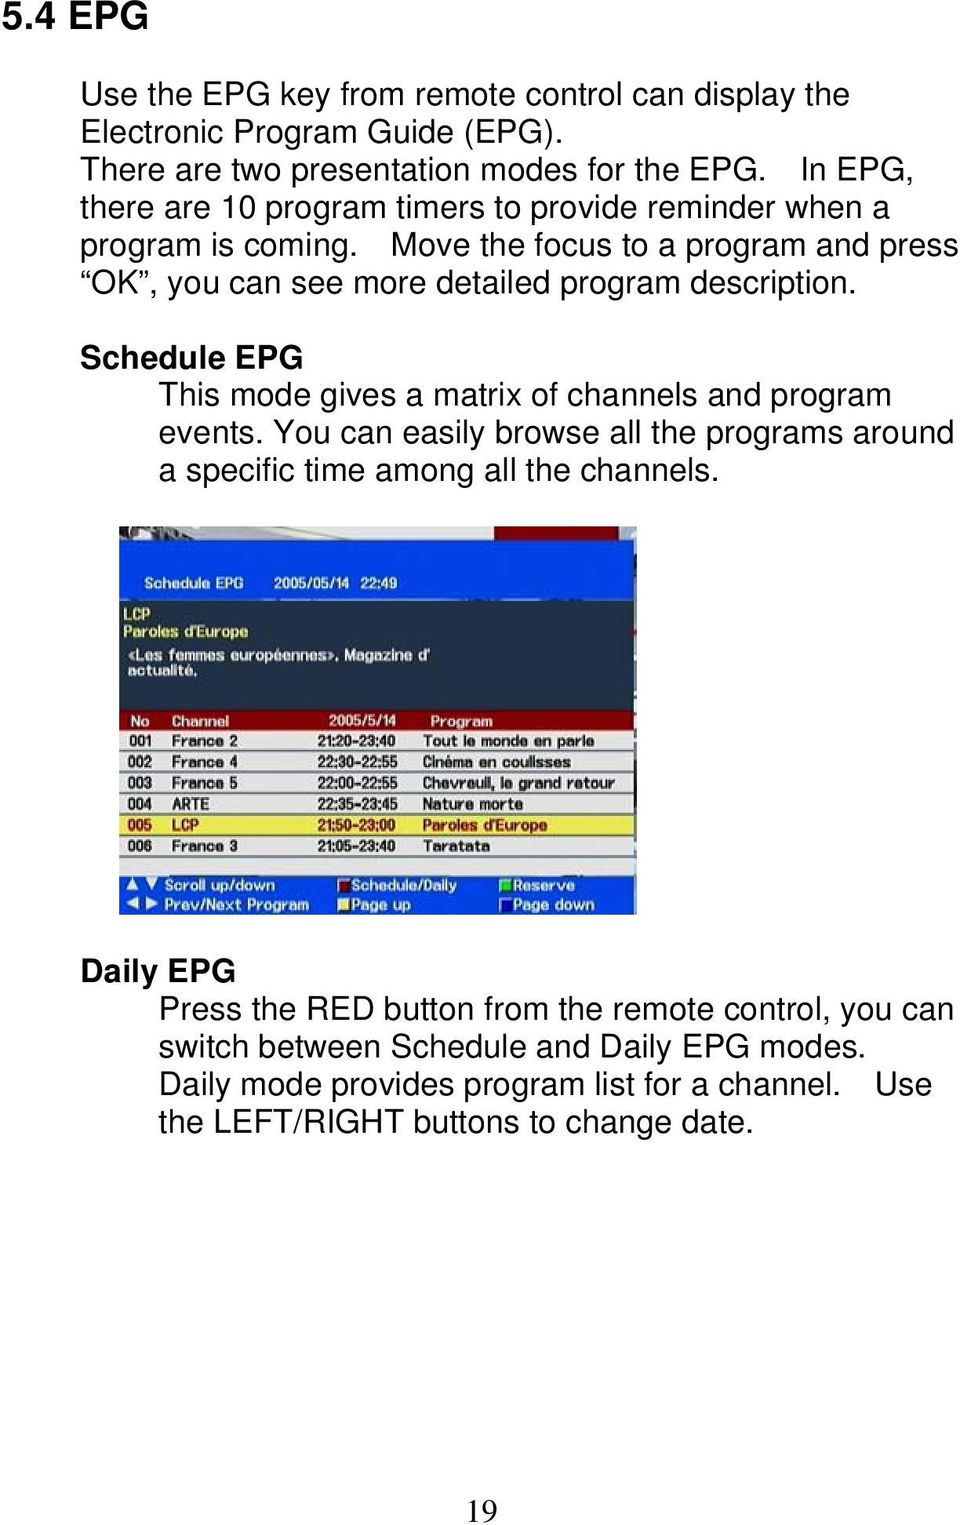 Move the focus to a program and press OK, you can see more detailed program description. Schedule EPG This mode gives a matrix of channels and program events.